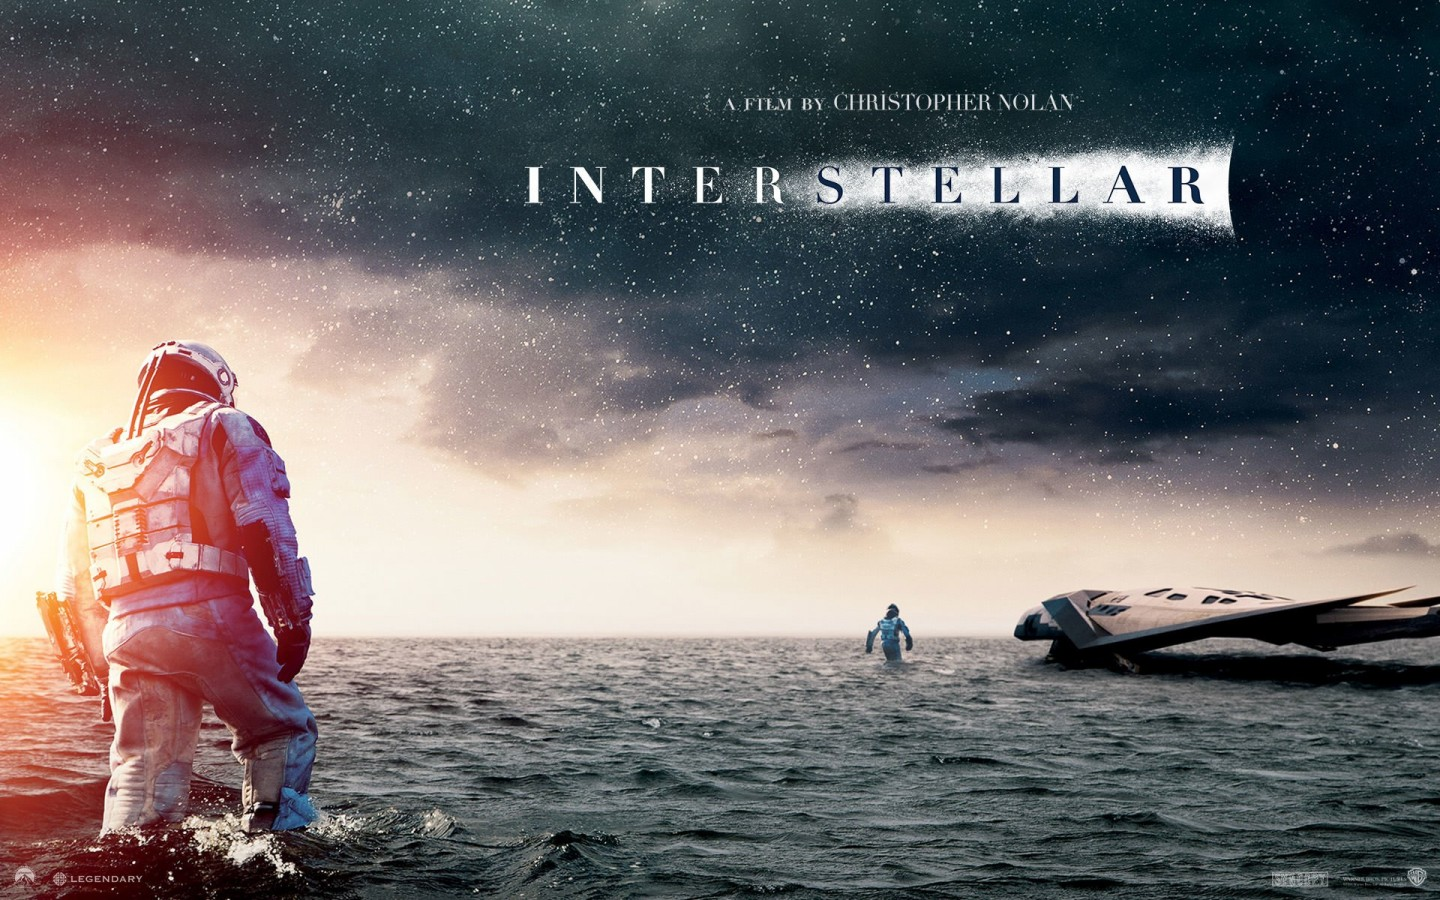 Interstellar The Movie Wallpaper for Desktop 1440x900